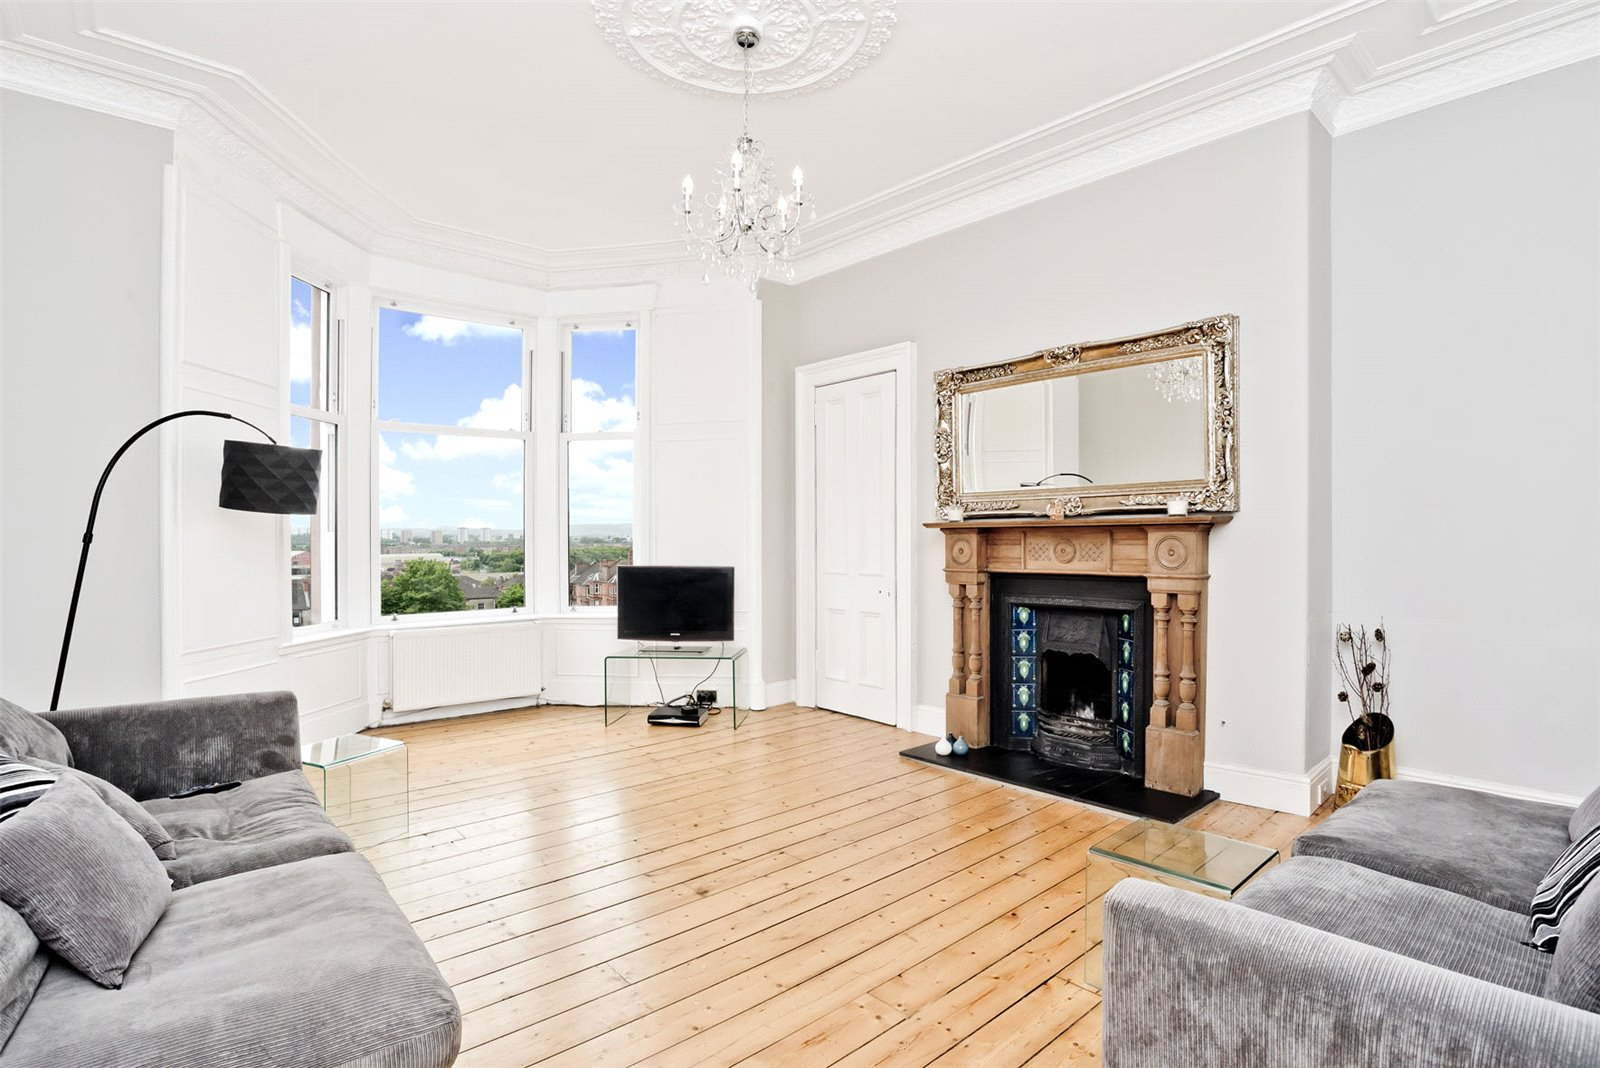 Five amazing Glasgow flats on the market right now...